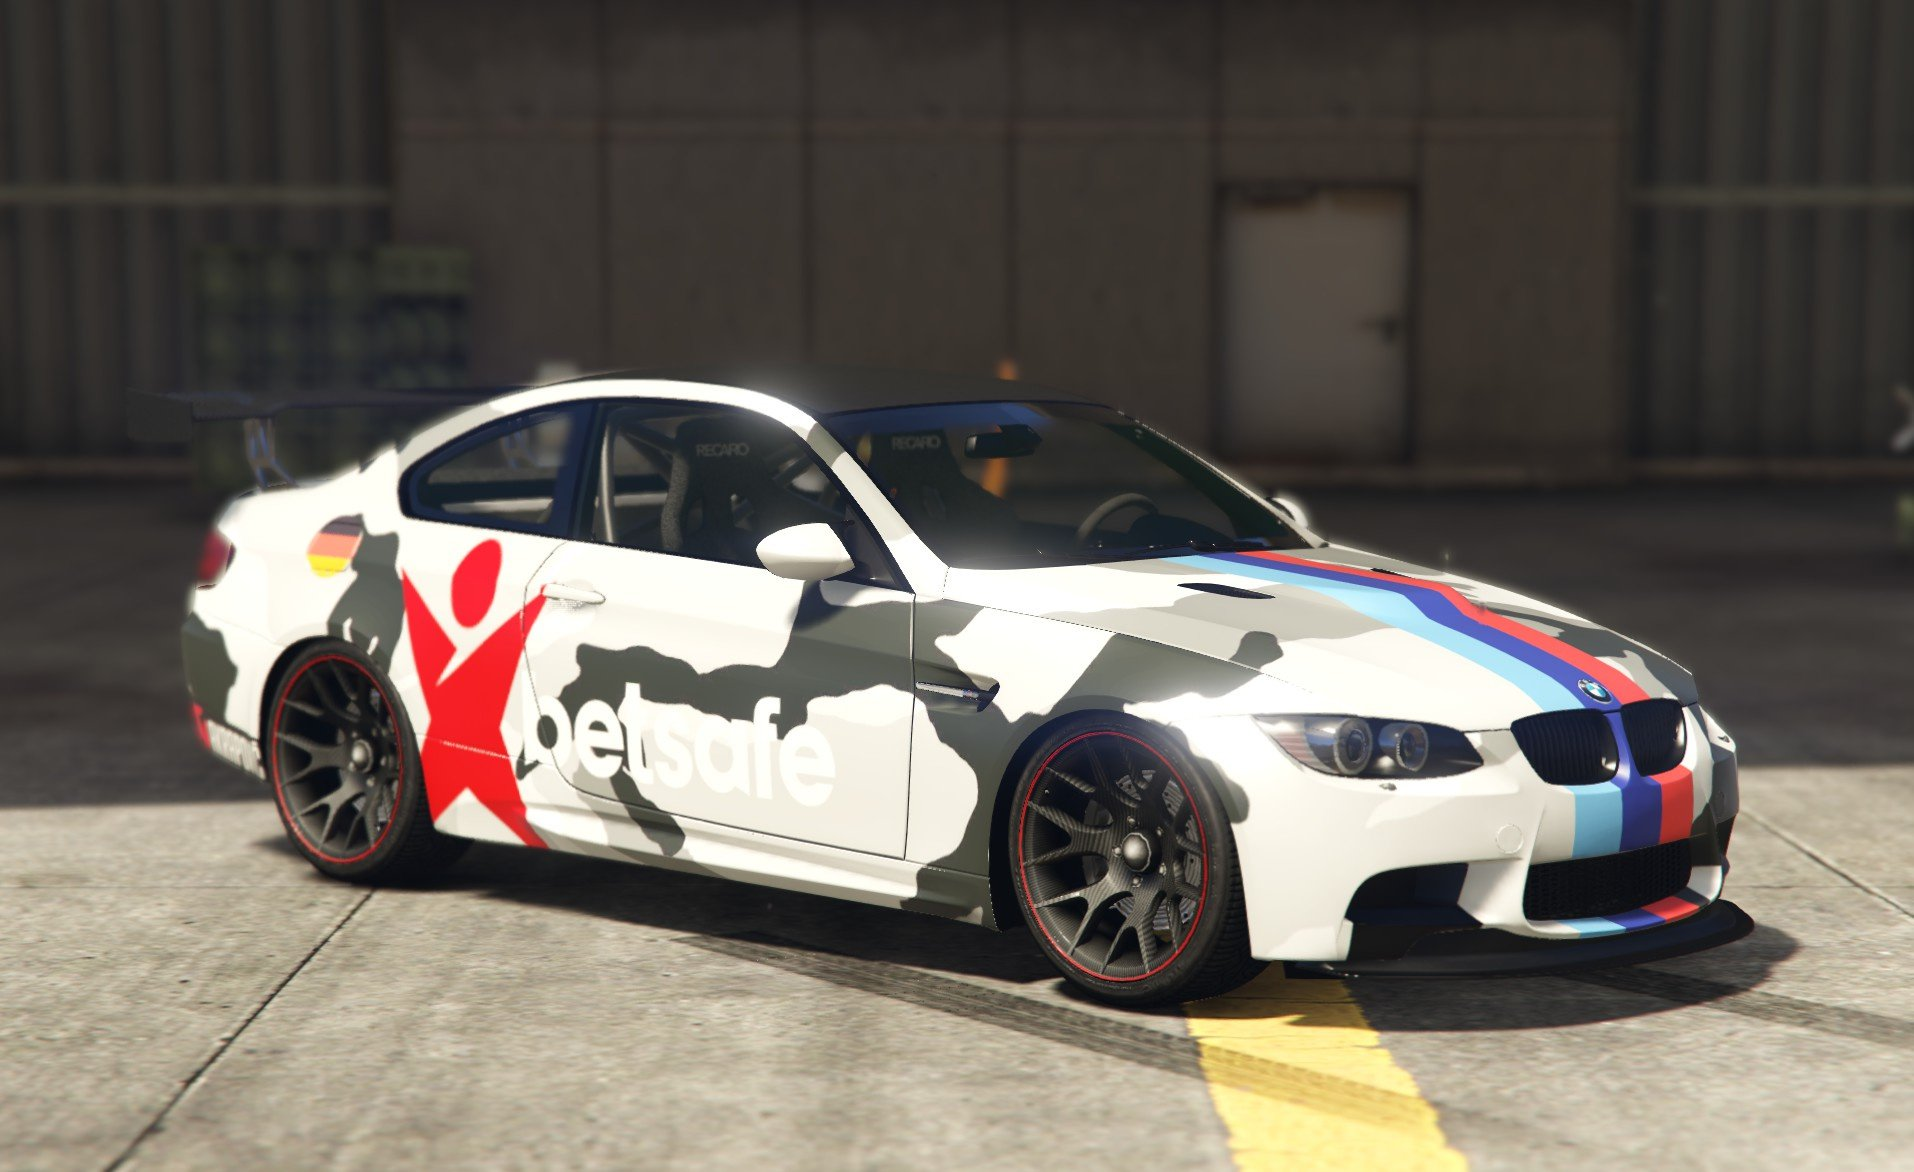 bmw e92 m3 gts camo livery inspired by jon olsson gta5. Black Bedroom Furniture Sets. Home Design Ideas